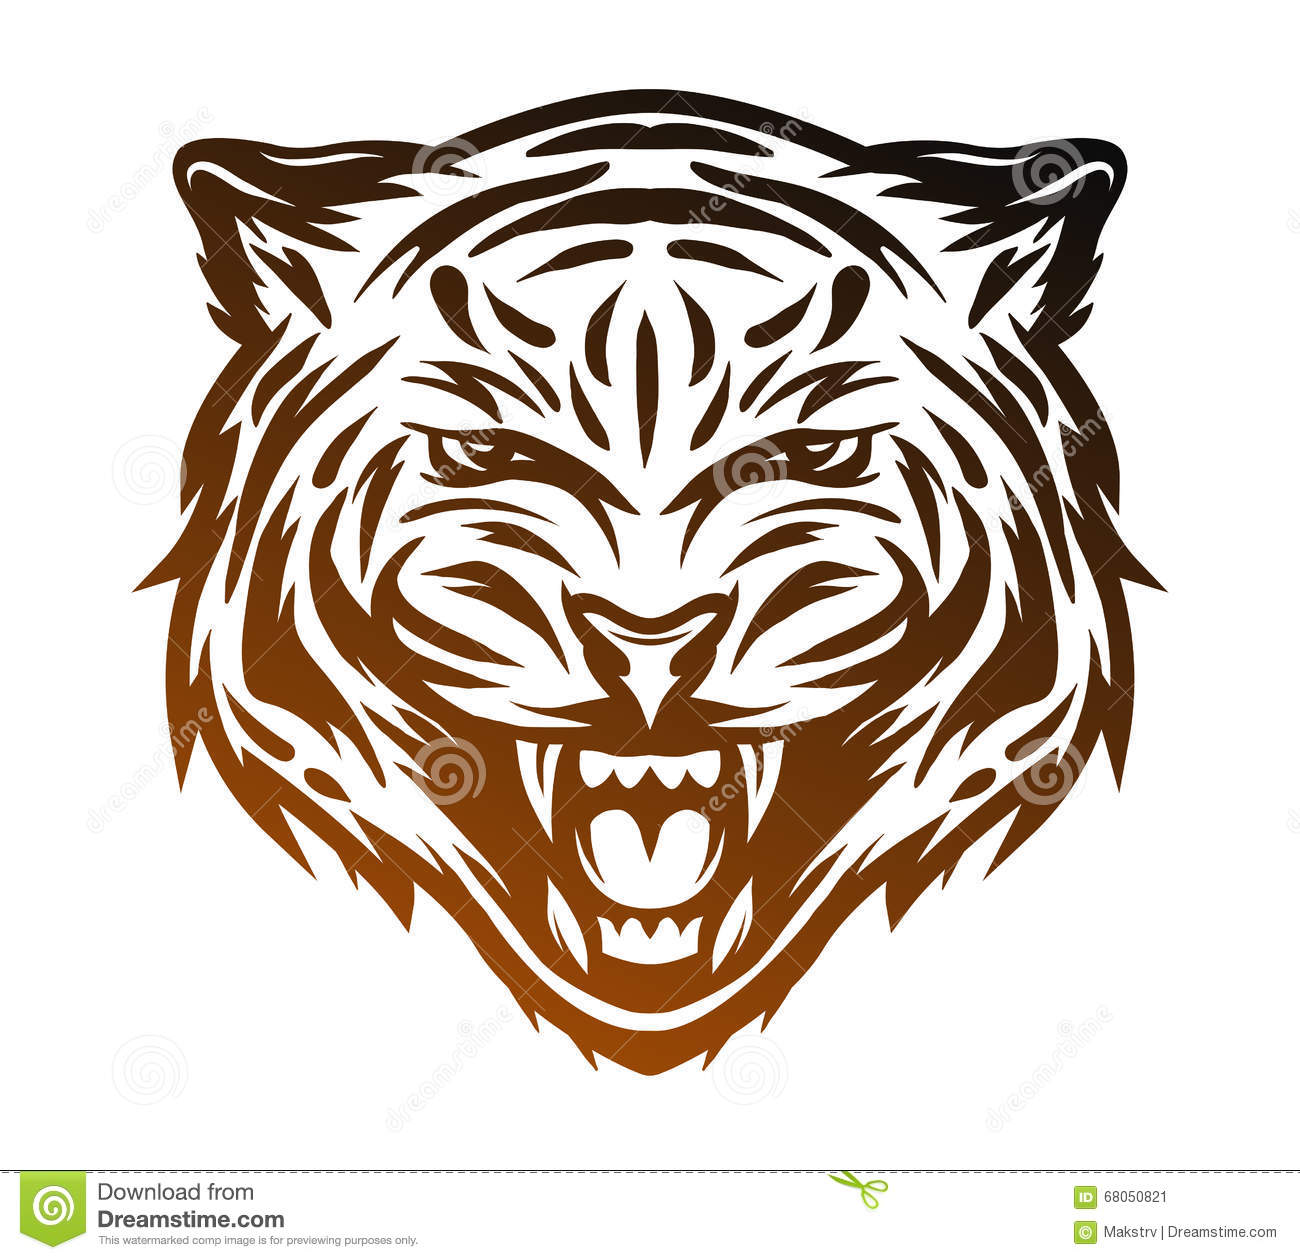 Line Drawing Of Tiger Face : Aggressive tiger face line art style stock vector